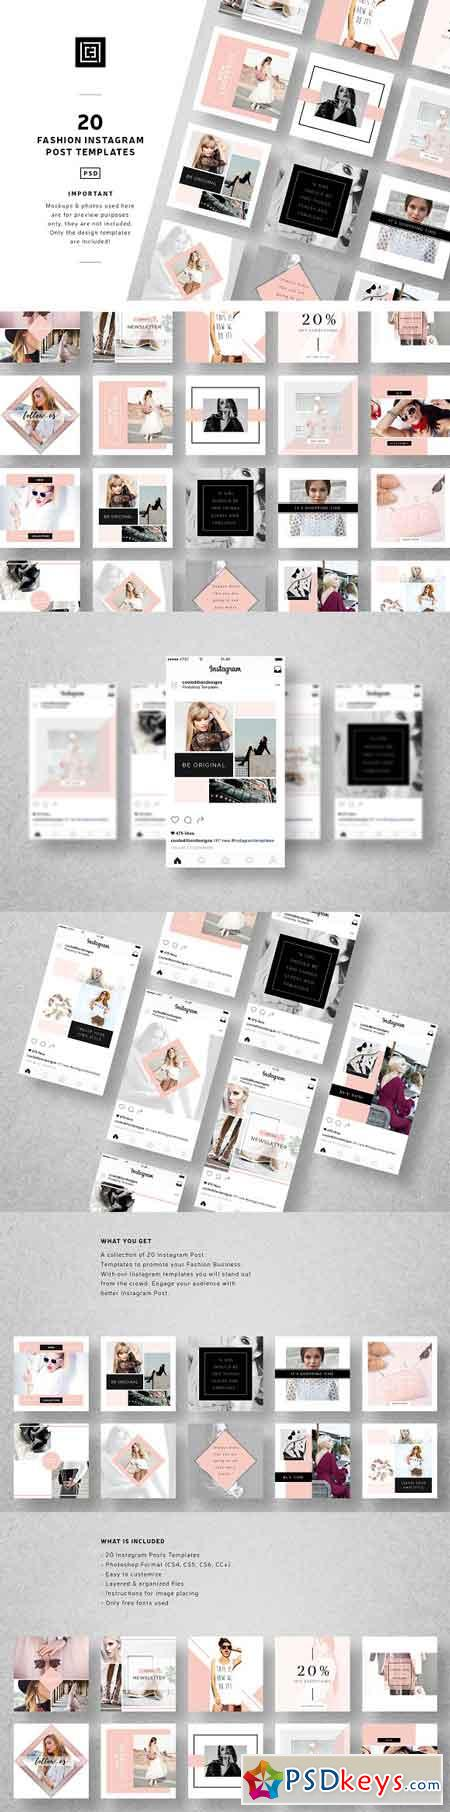 Fashion Instagram Post Templates 2583496